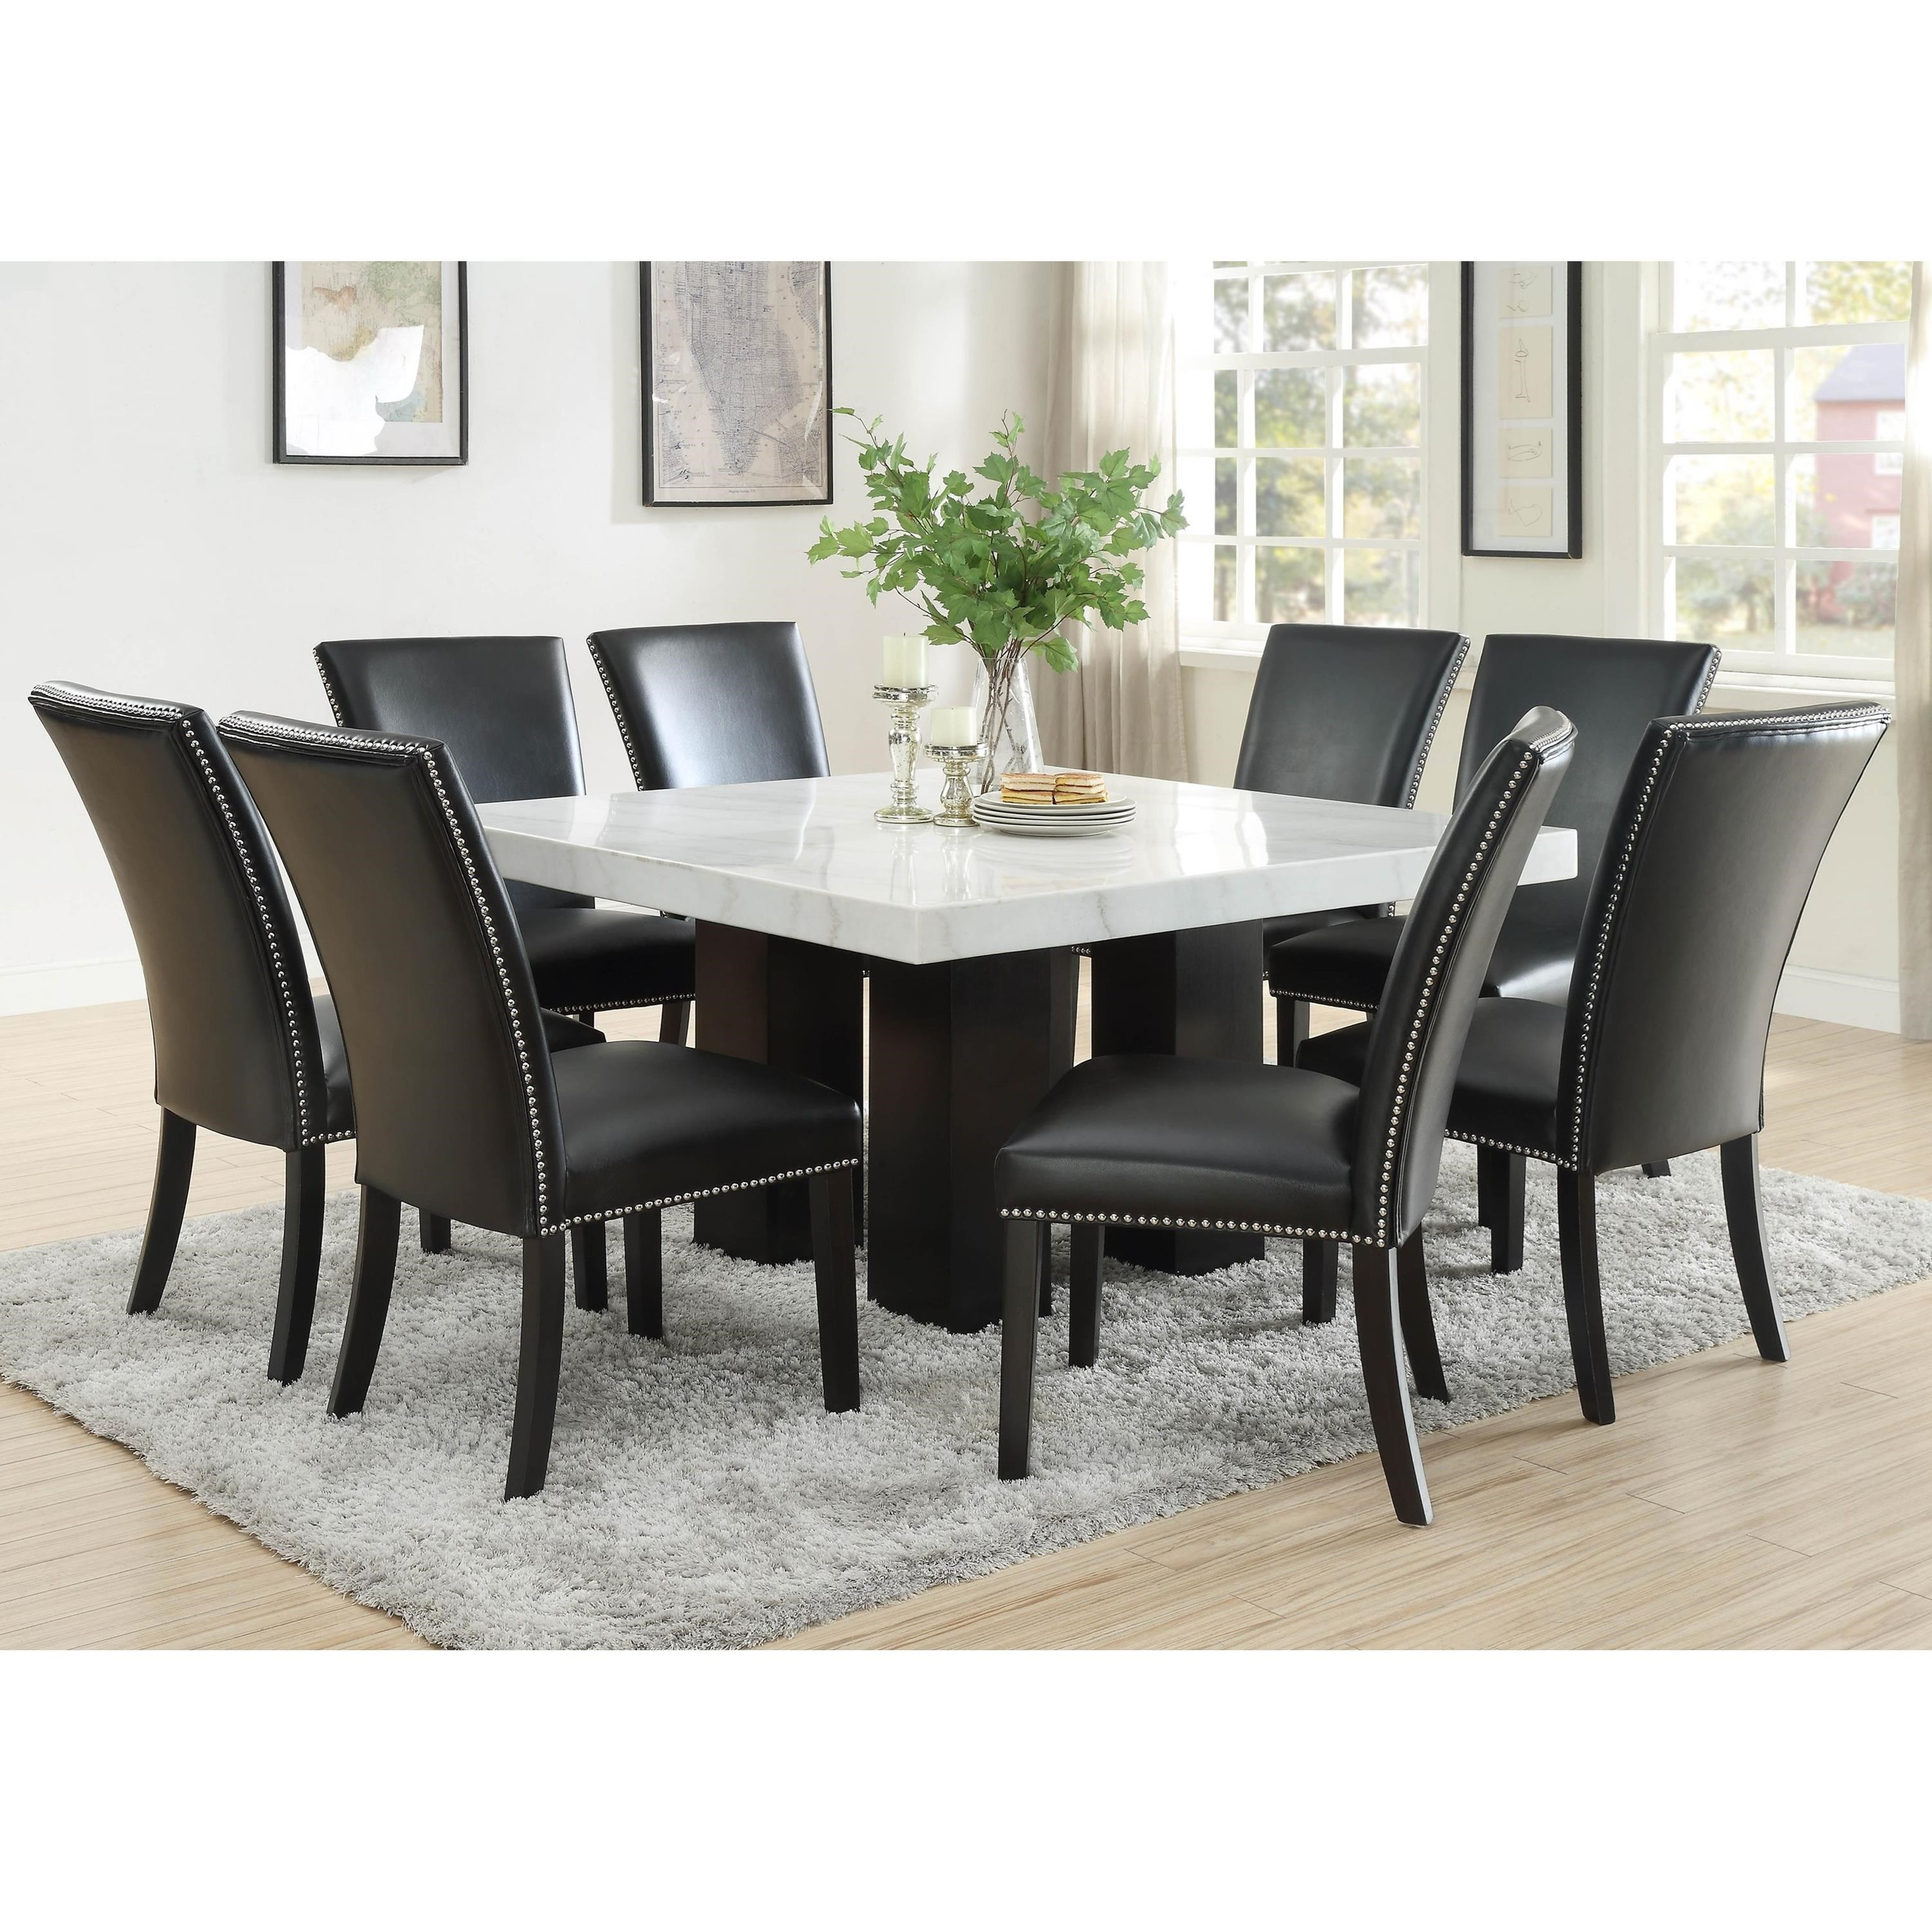 Camila 9 Piece Dining Set by Steve Silver at Standard Furniture